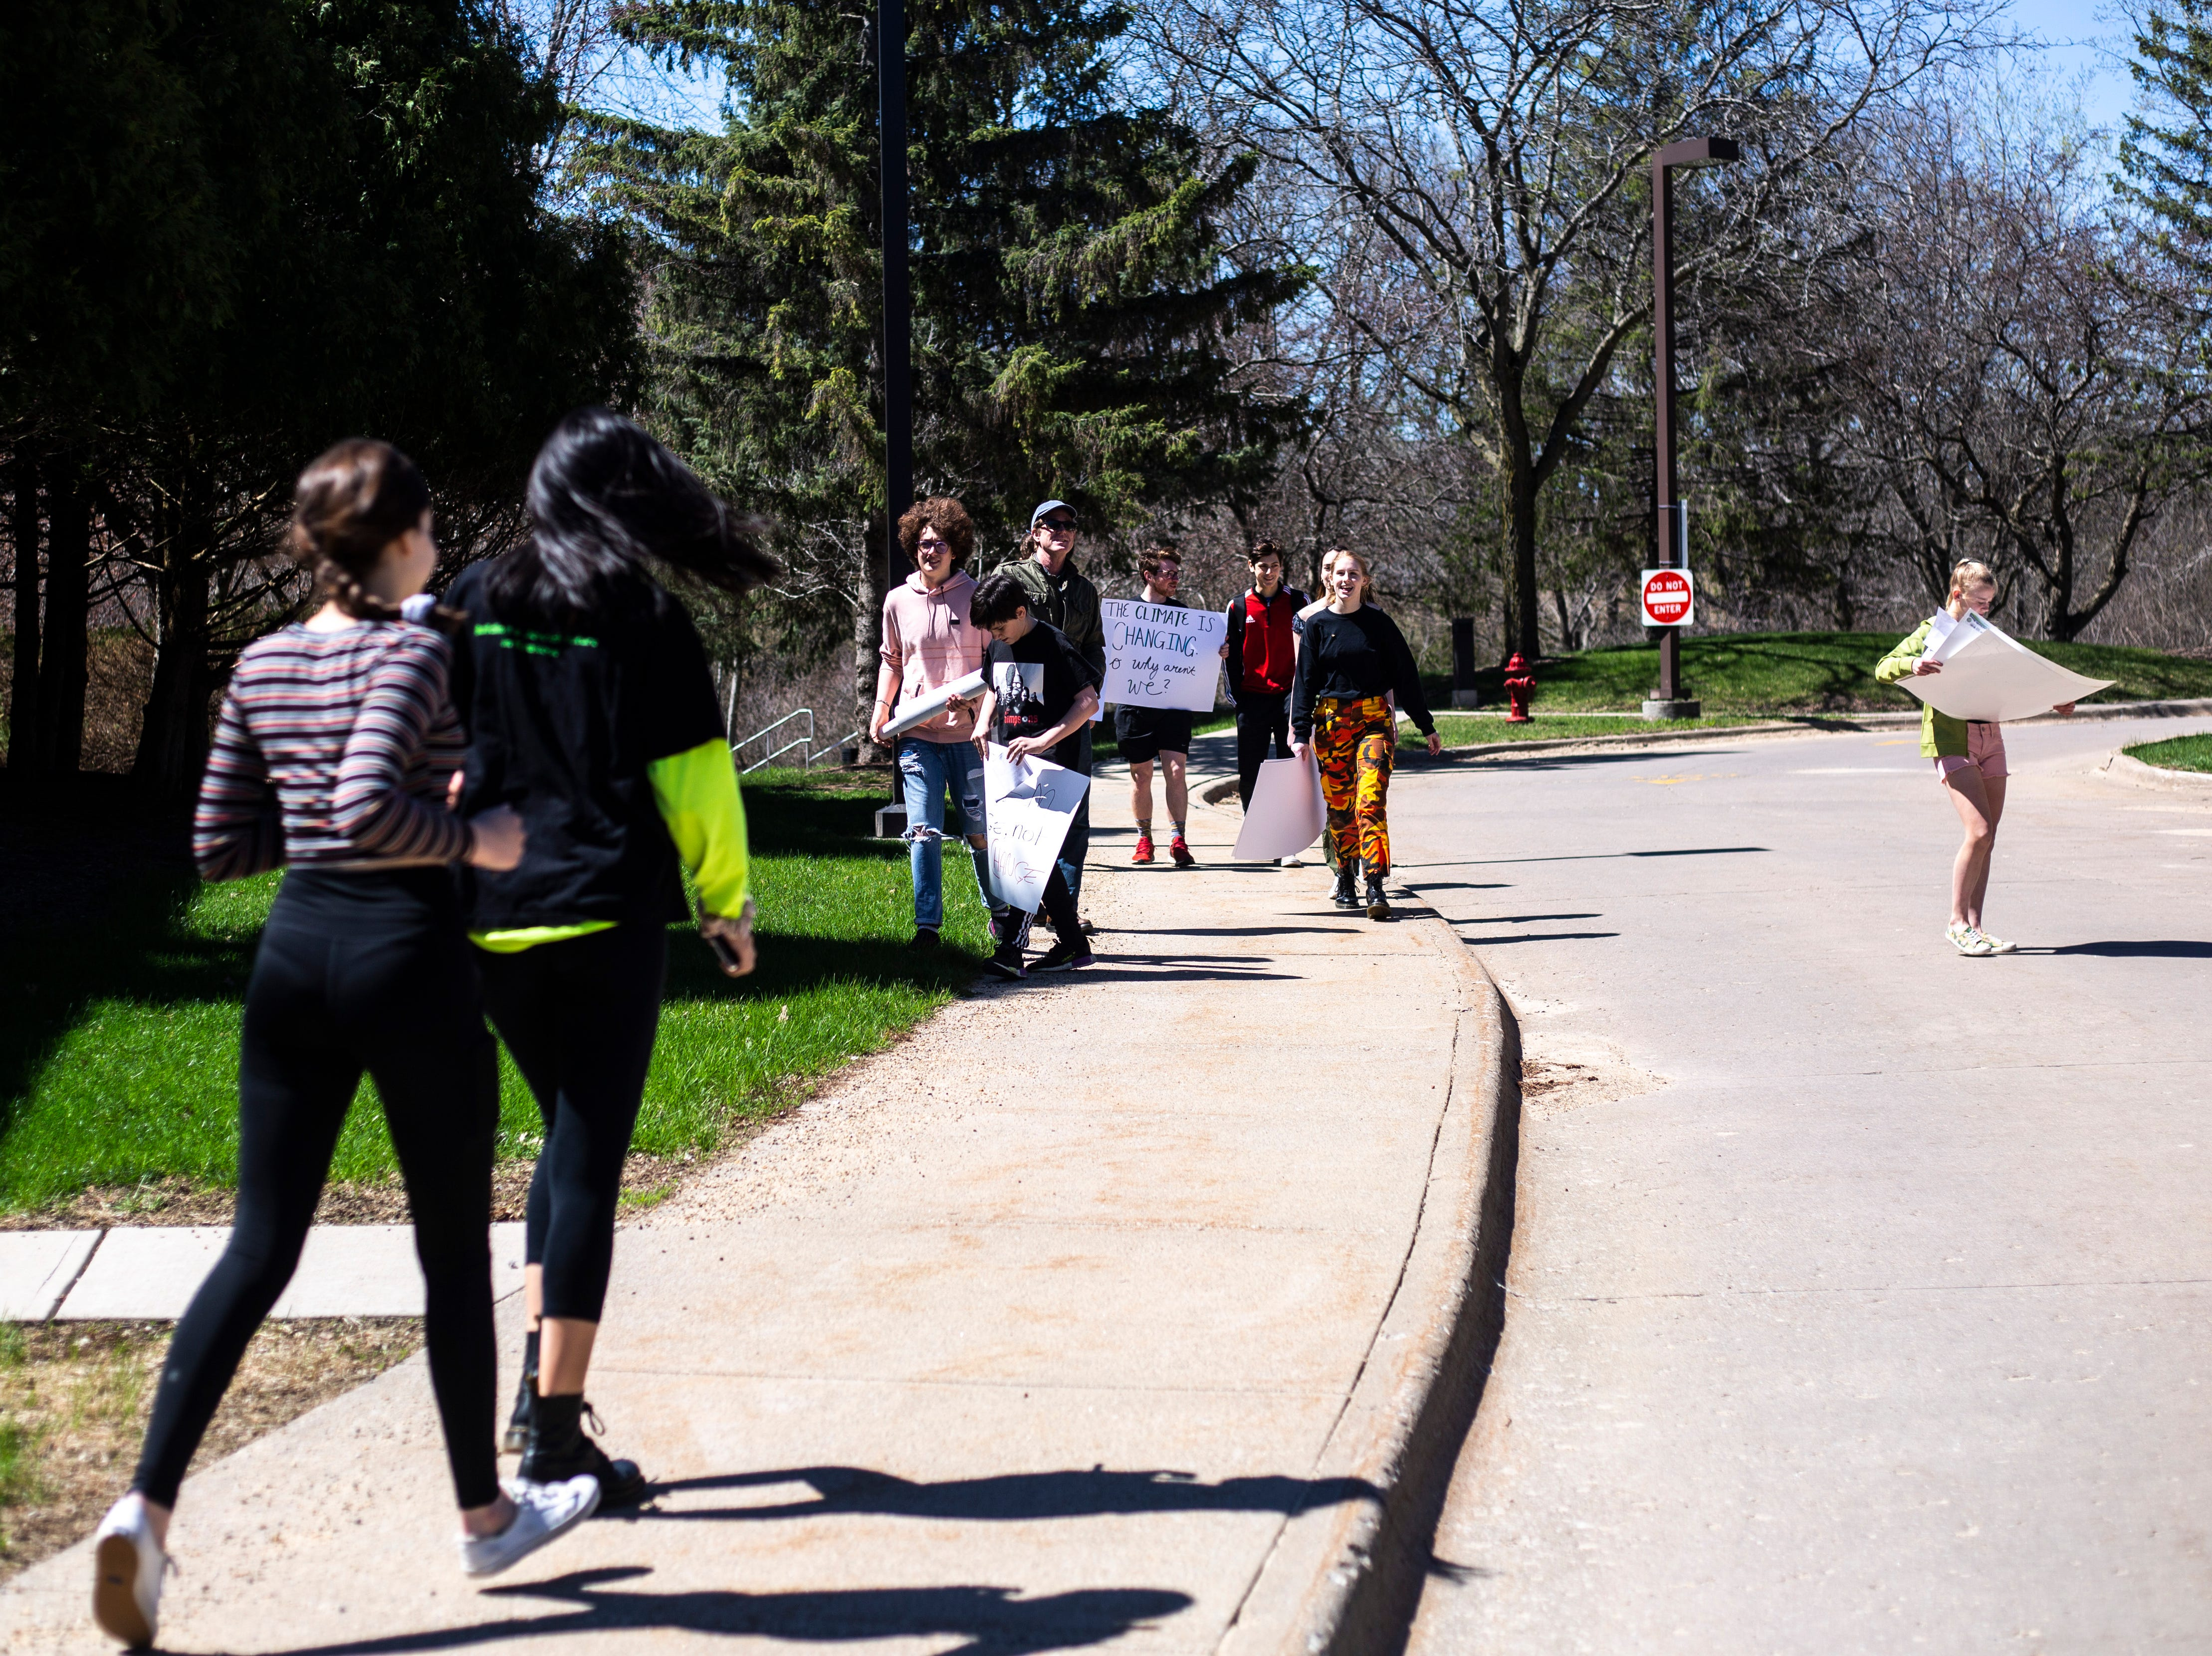 South East Junior High students meet up with community members during a weekly walkout demanding solar panels on school buildings, Friday, April 19, 2019, outside the Iowa City Community School District offices along North Dodge Street in Iowa City, Iowa.